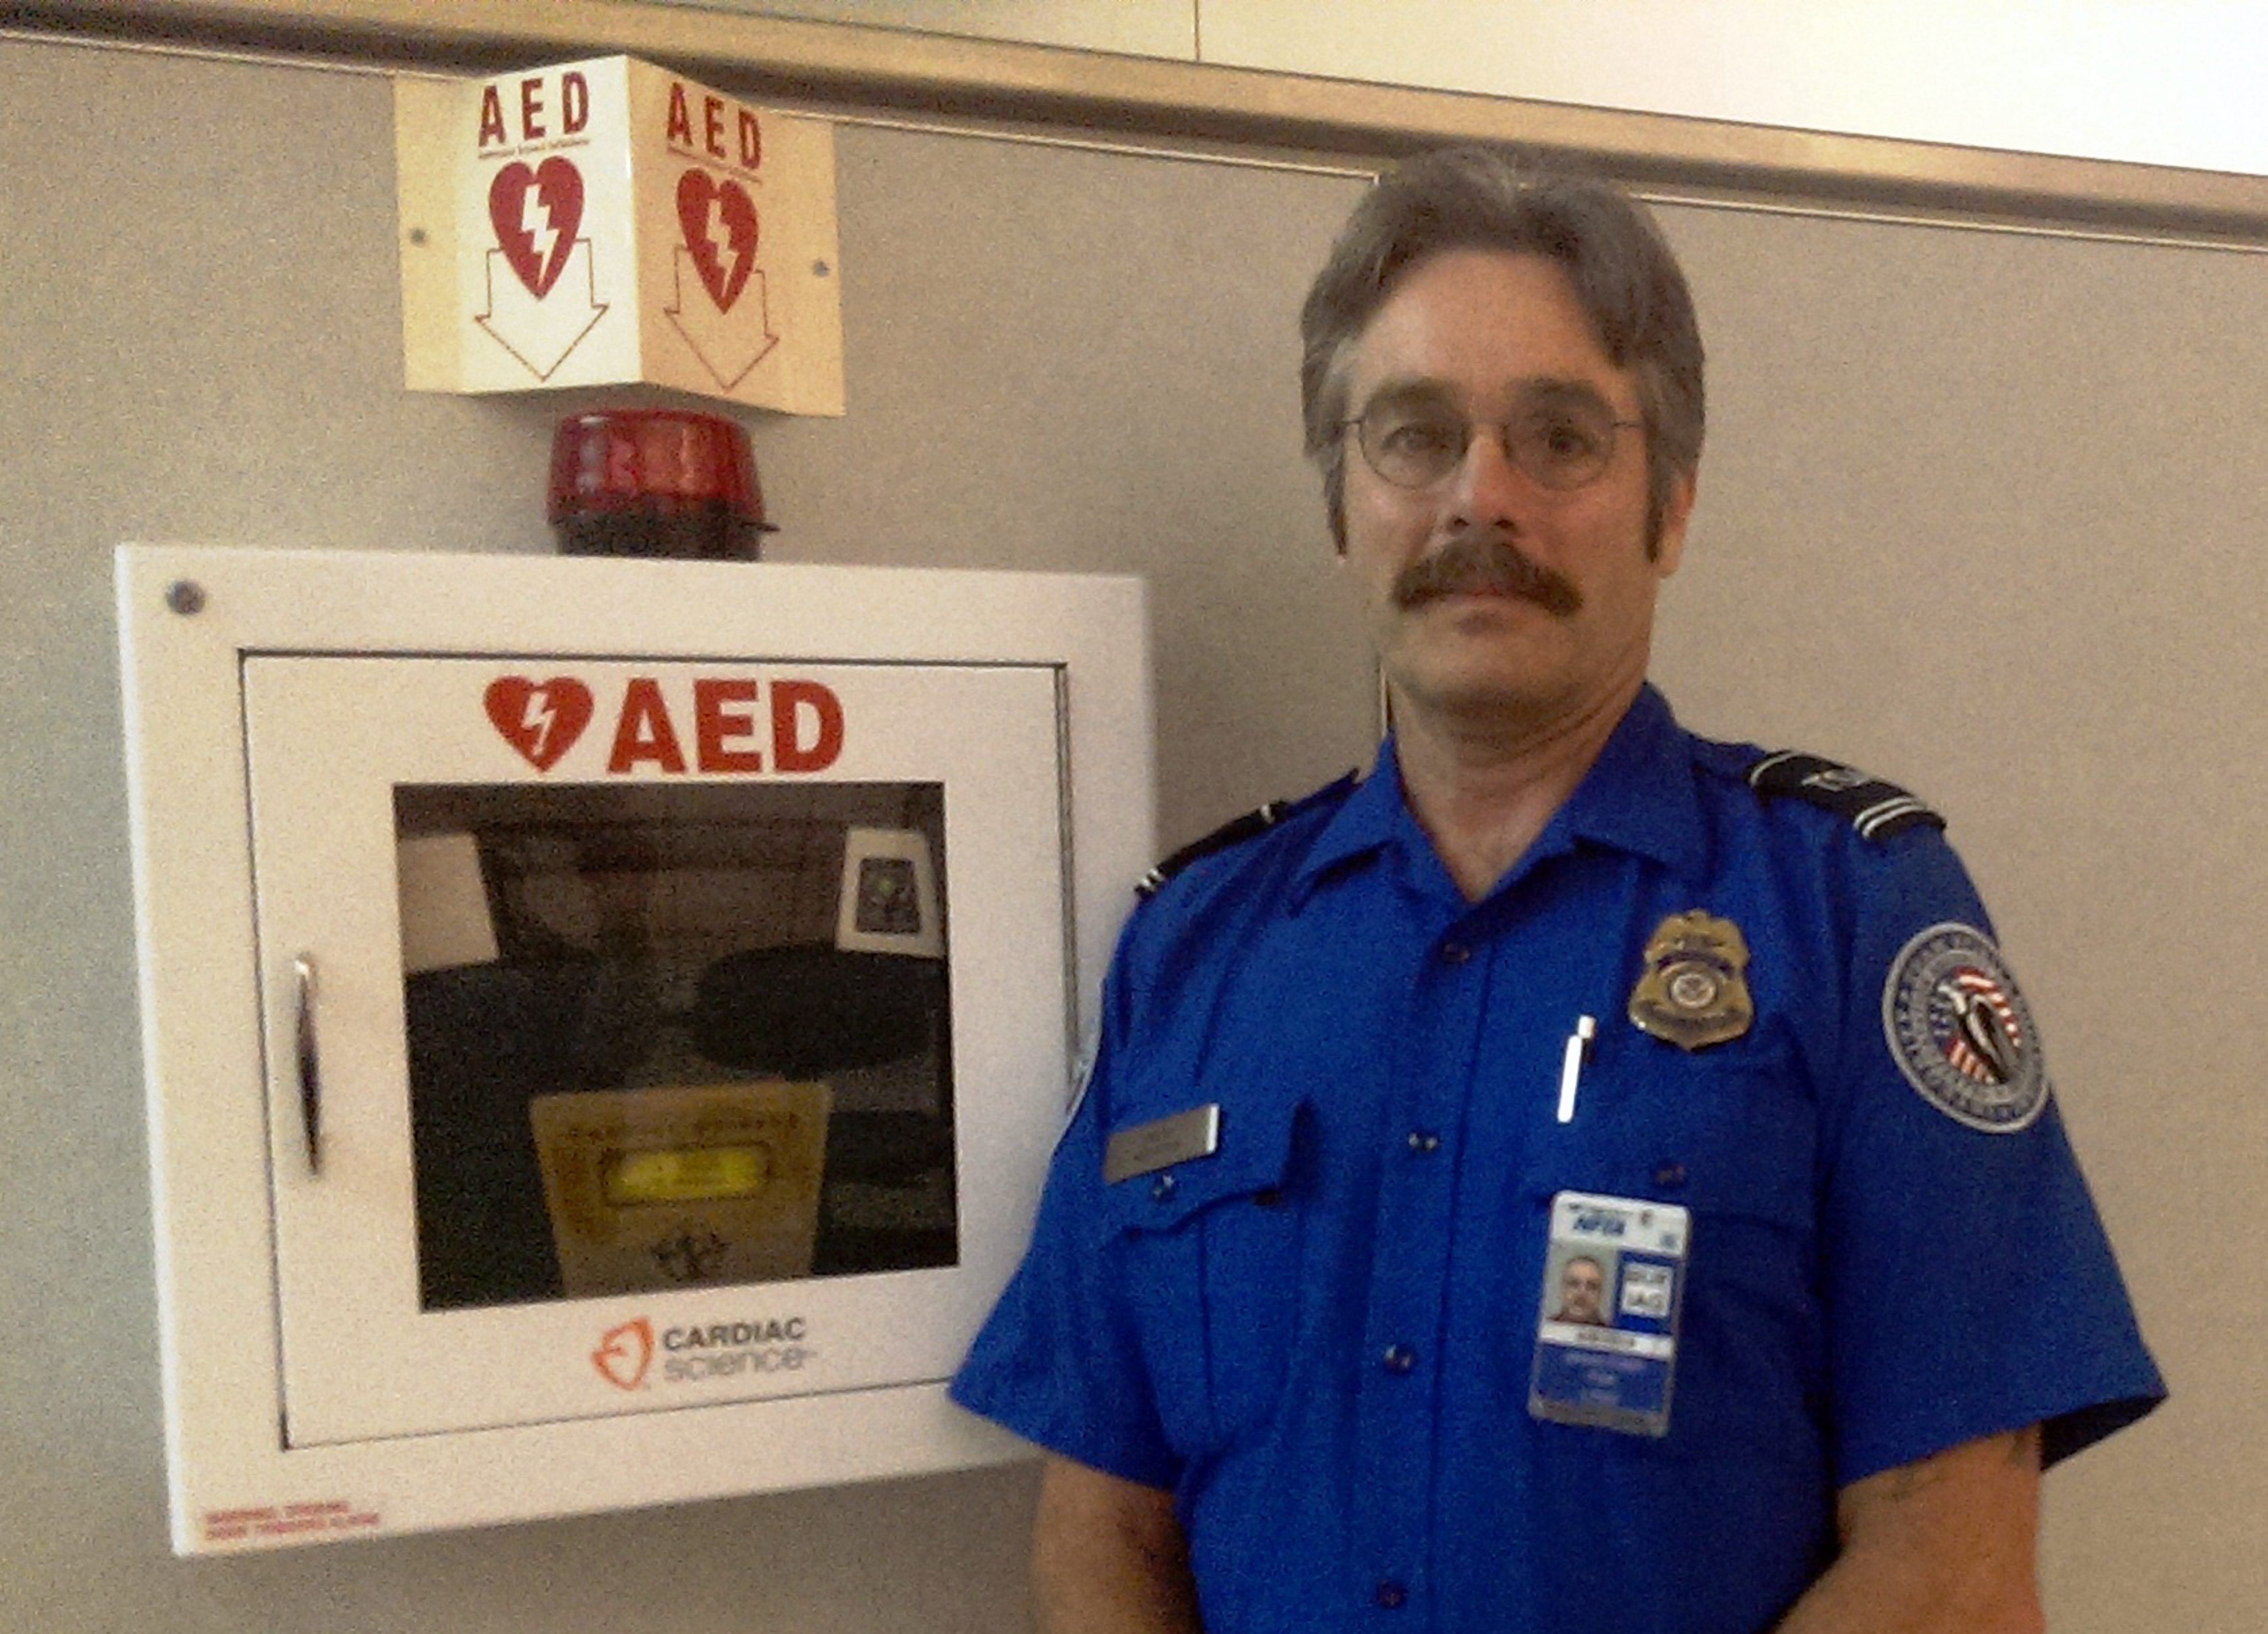 Jim Dolph, the lead TSA officer at the Buffalo airport, saved a passenger by using a defibrillator.